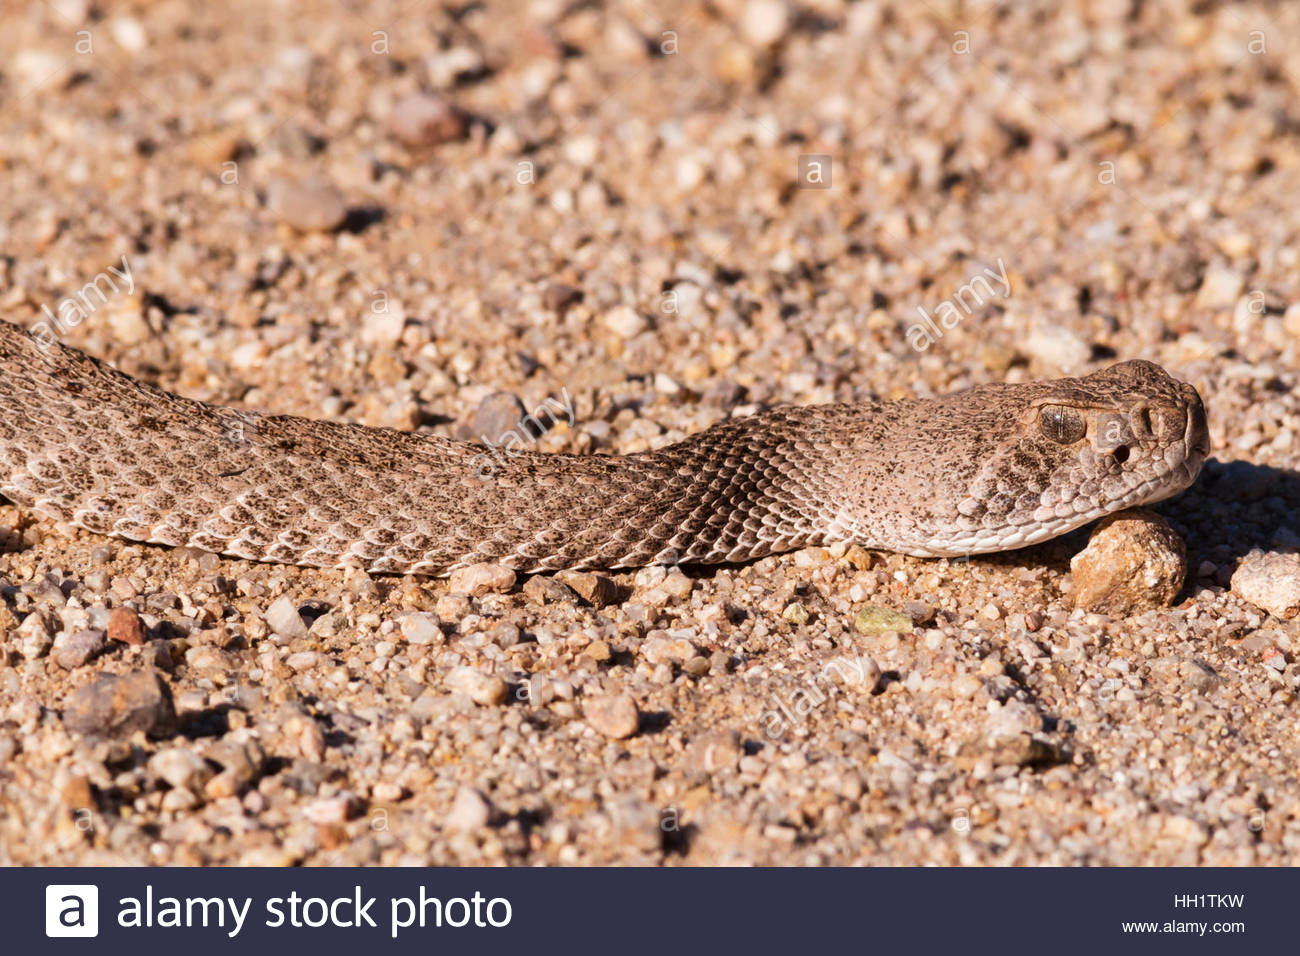 Western Diamond-backed Rattlesnake Crotalus atrox Arizona Stock Photo